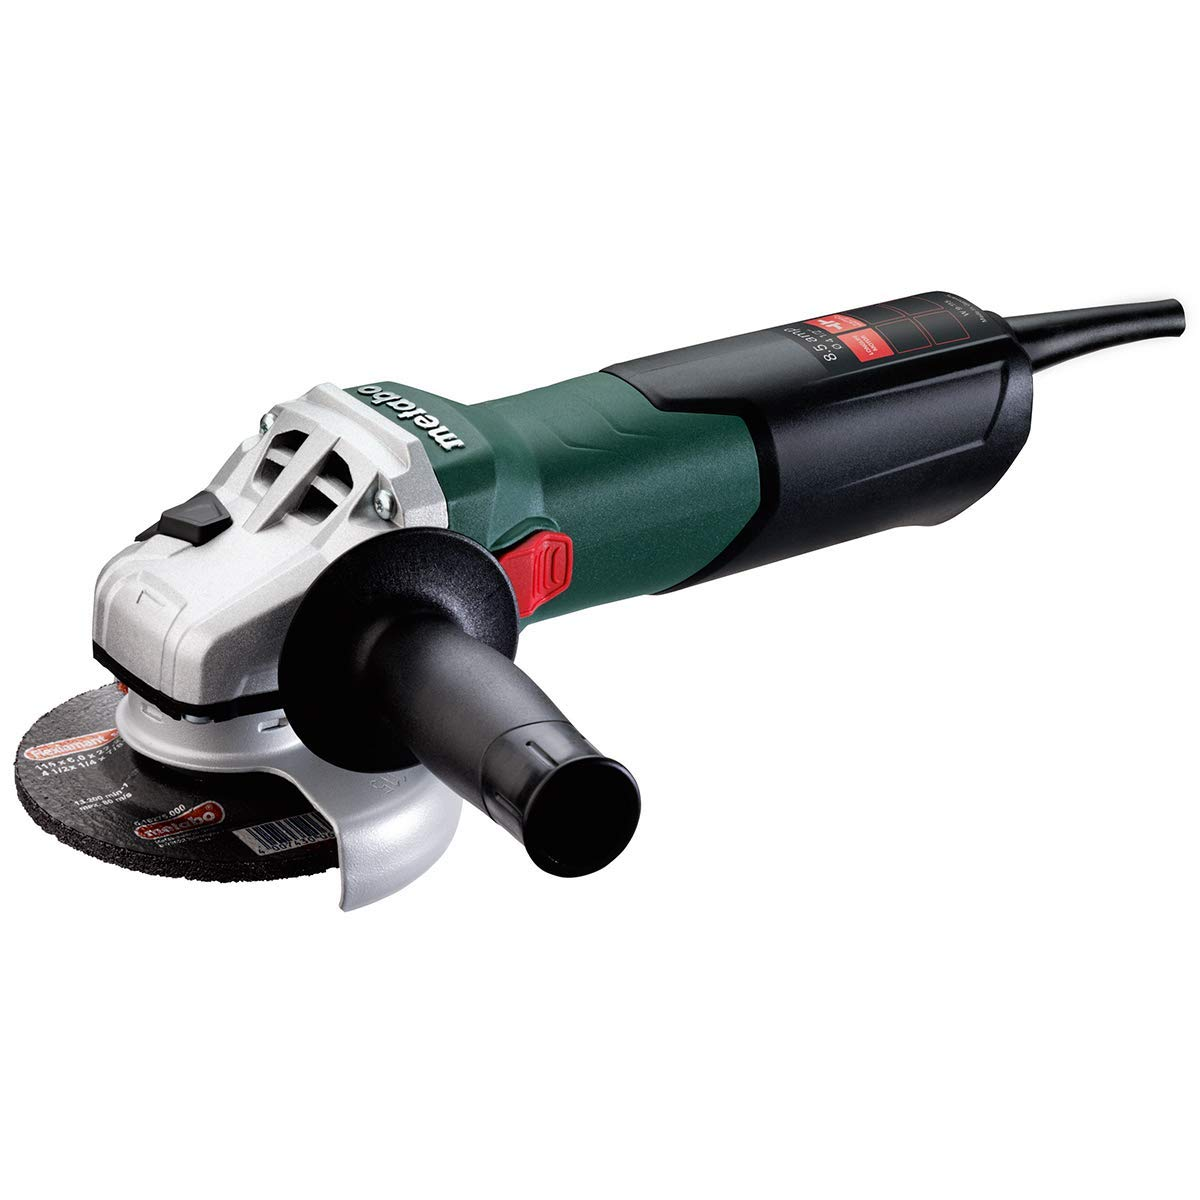 4-1/2 Inch Wheel Diameter, 10,500 RPM, Electric Angle and Disc Grinder